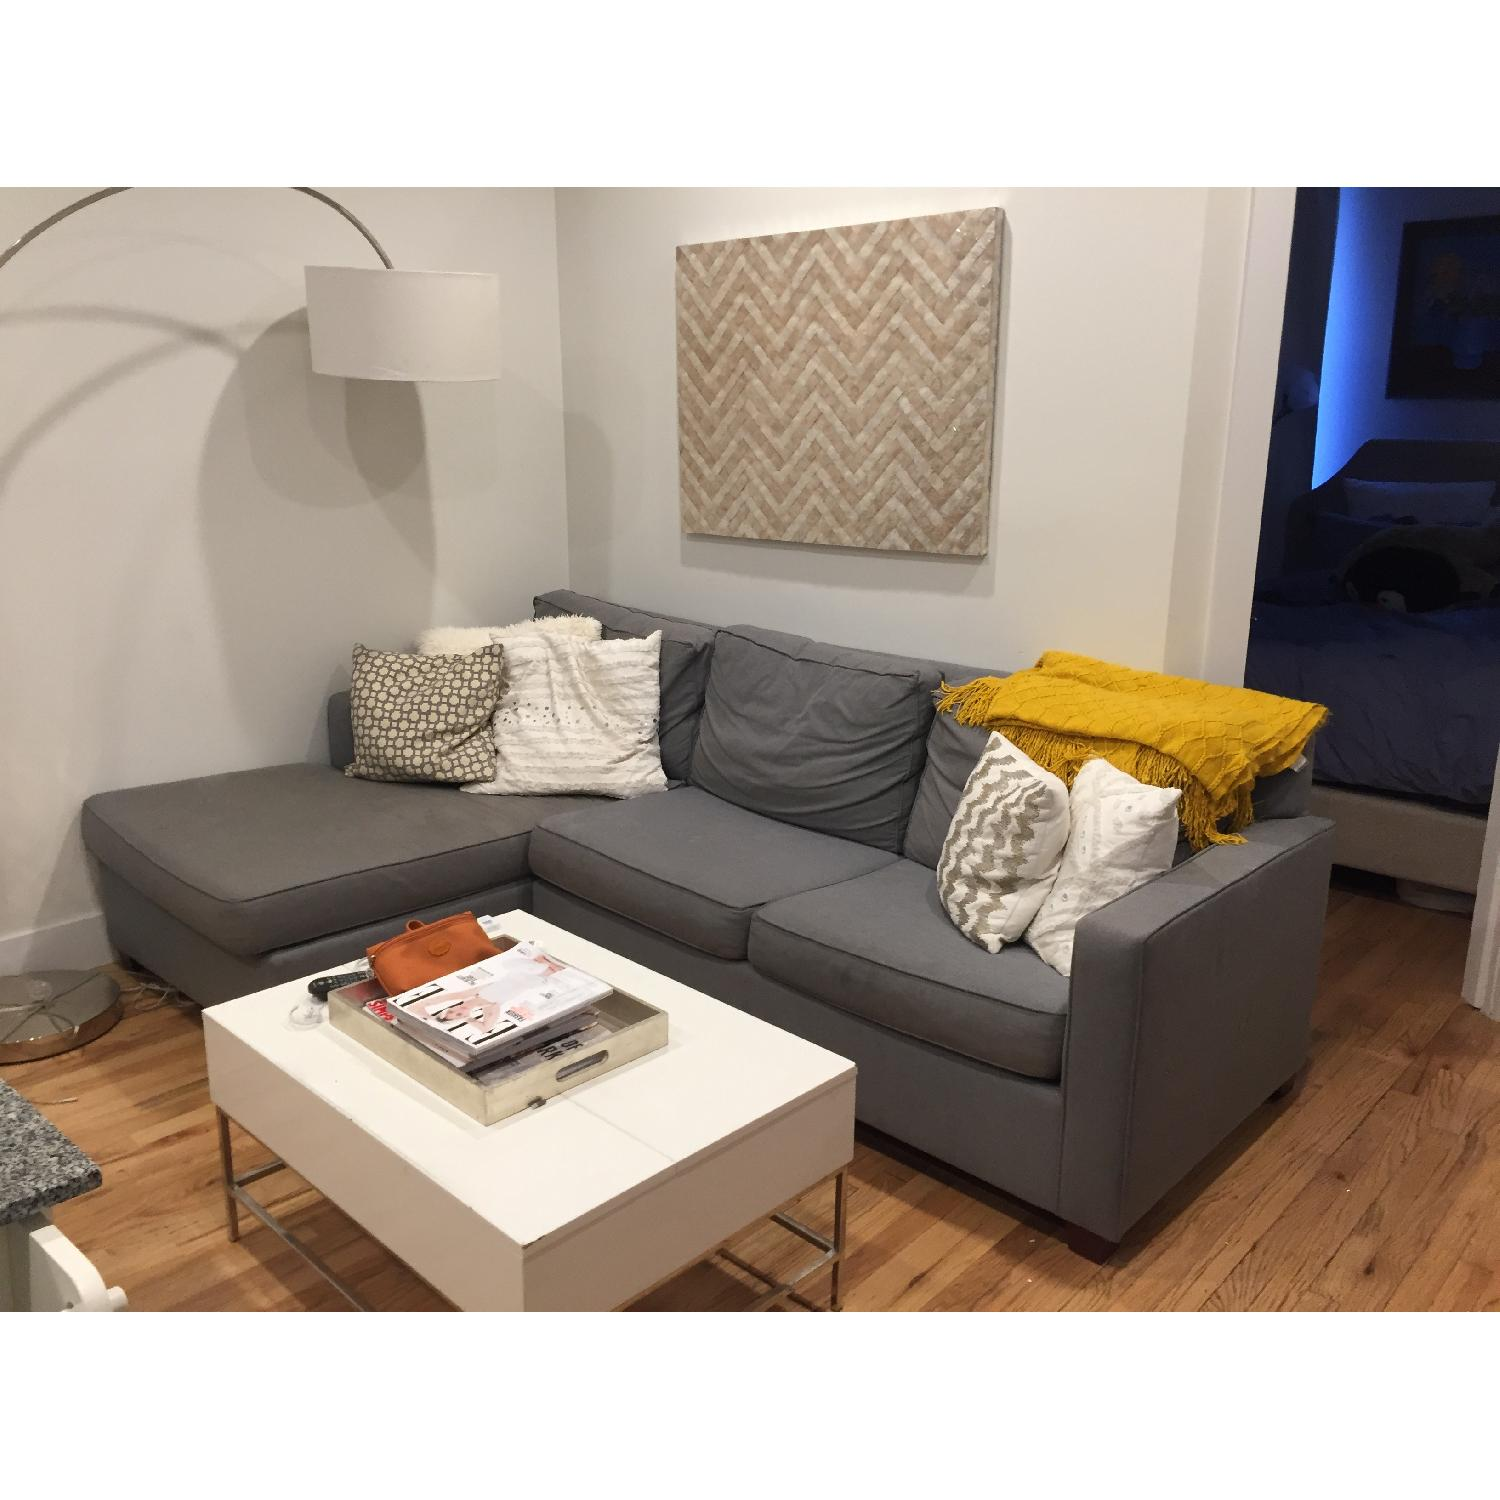 West Elm Henry 2-Piece Chaise Sectional - image-3